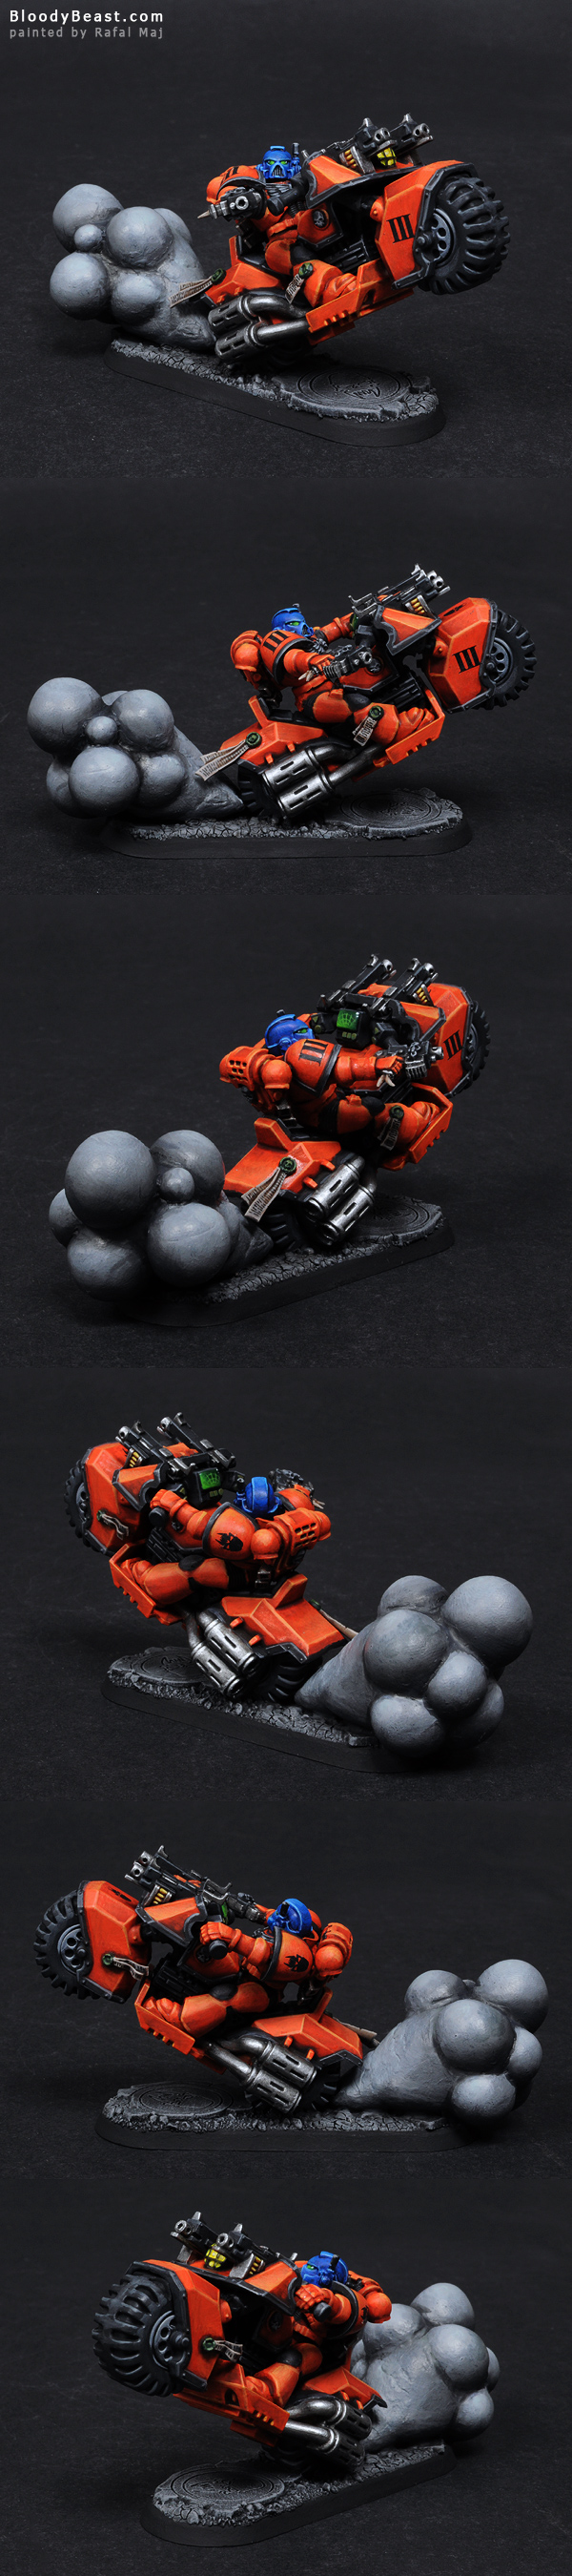 Astral Tiger Biker Sergeant painted by Rafal Maj (BloodyBeast.com)